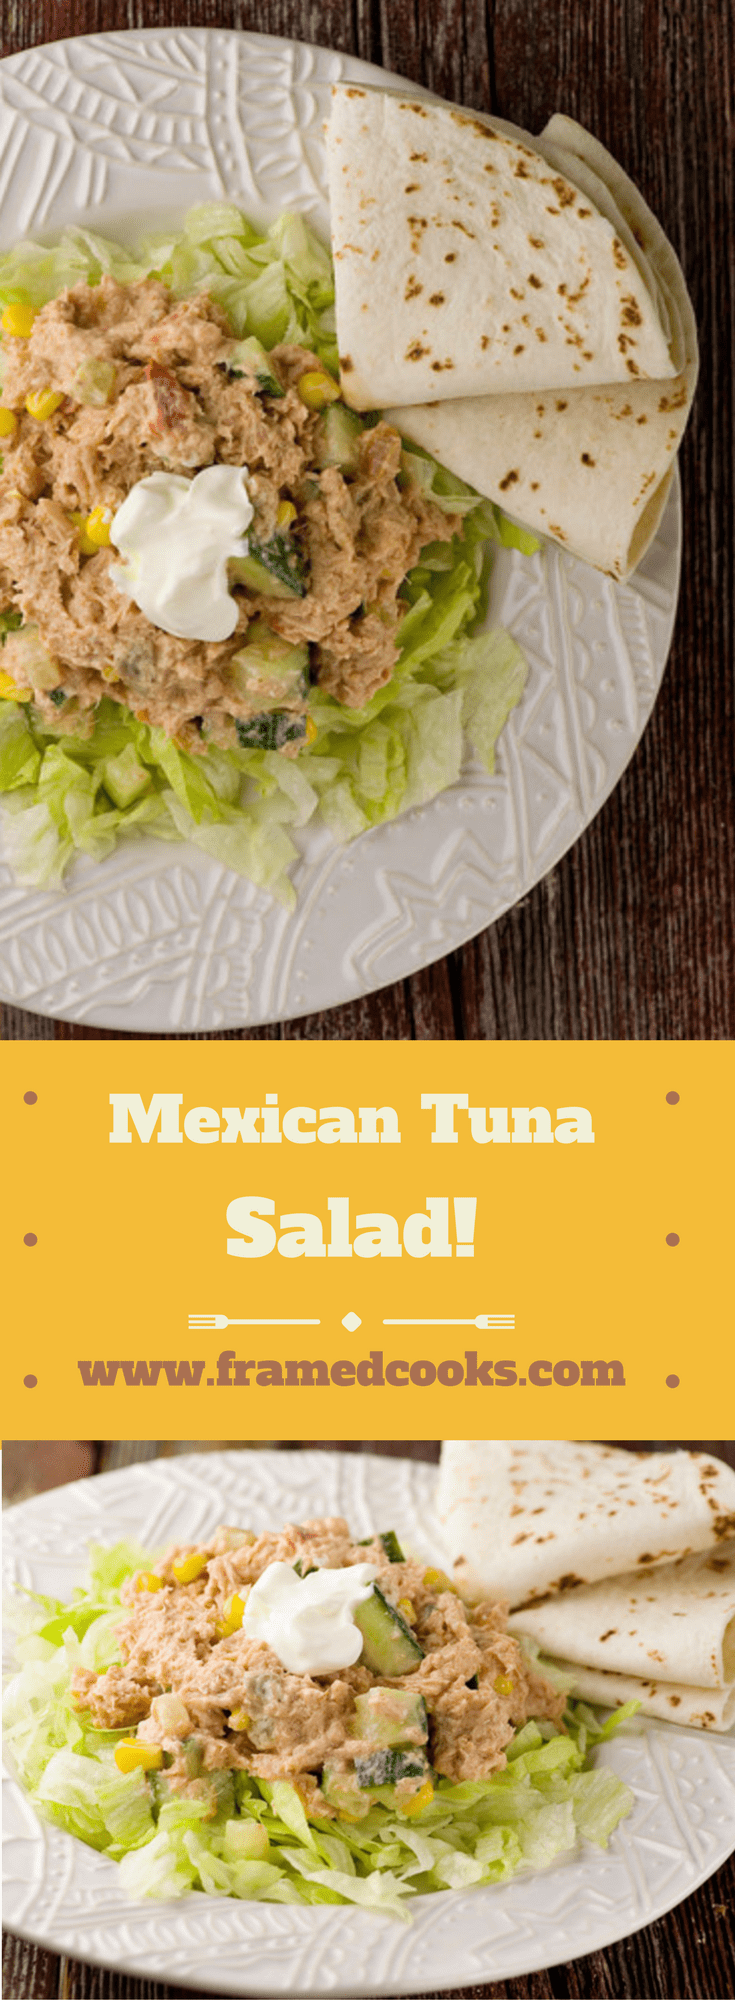 This easy recipe for Mexican tuna salad takes one of your favorite lunches and adds a little spice!